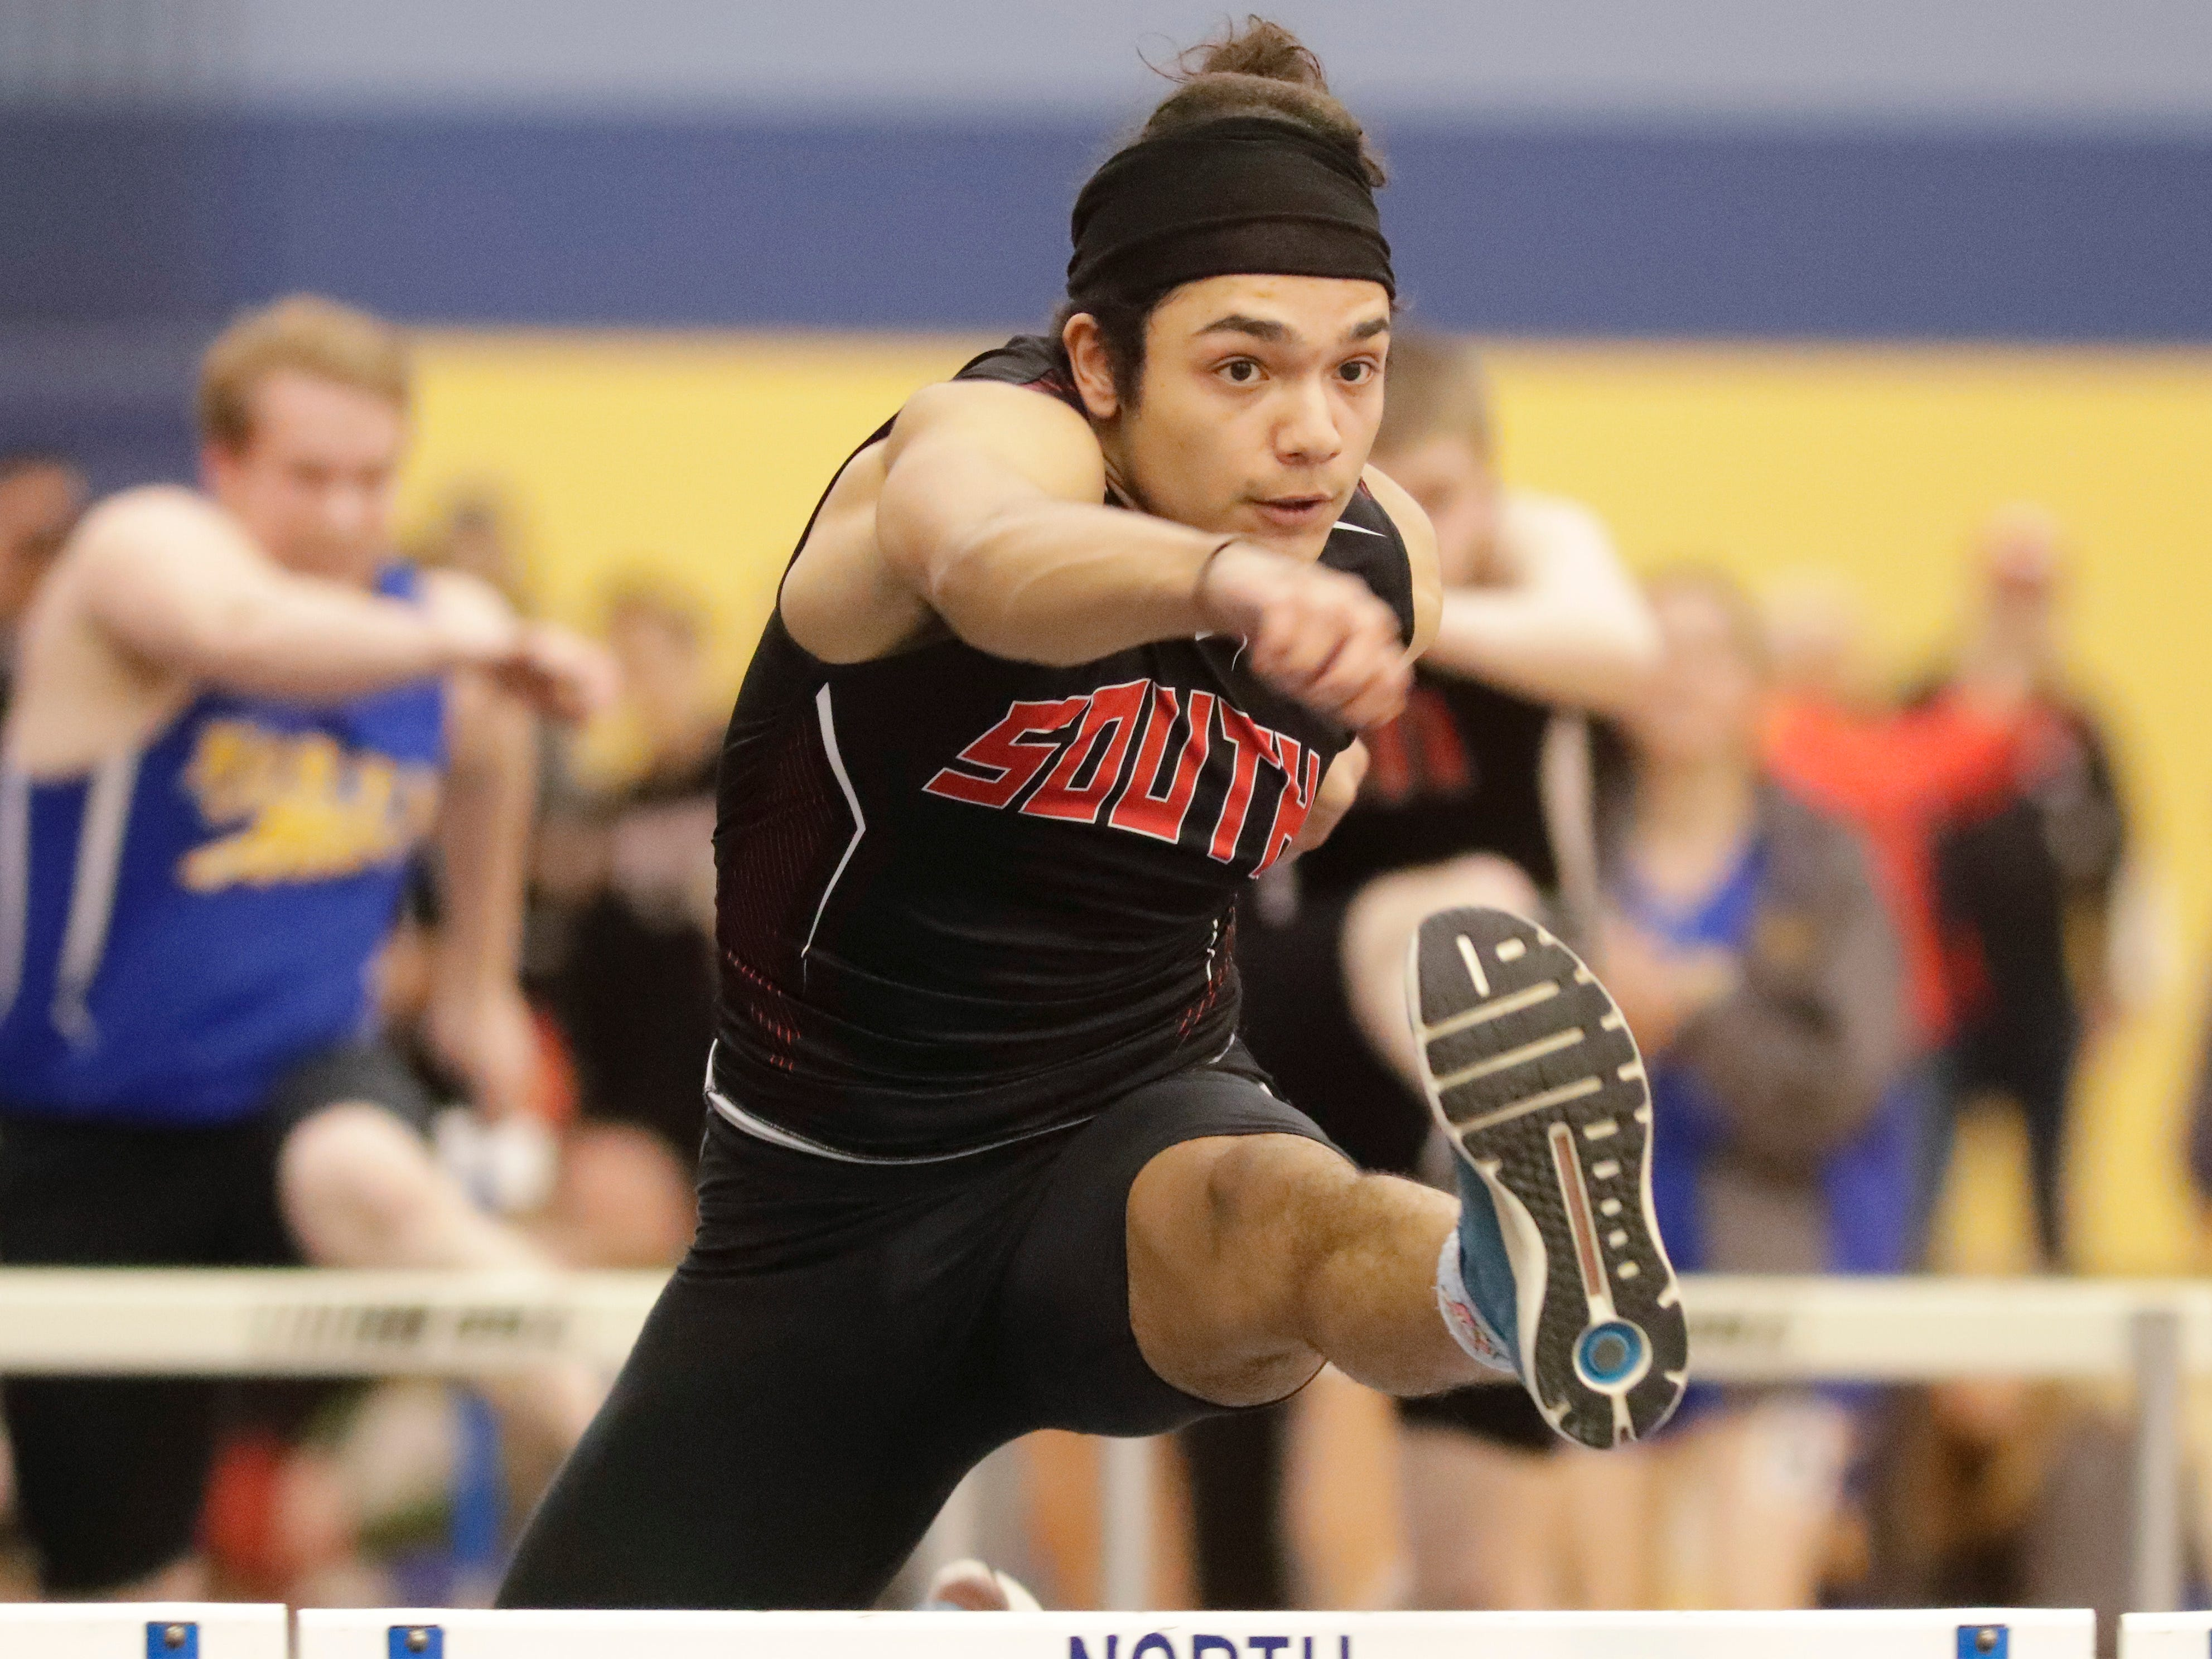 Sheboygan South's Anthony Pernell-McGinnis leads in the 55 meter high hurdles at the Sheboygan North Invite track meet, Tuesday, April 2, 2019, in Sheboygan, Wis.